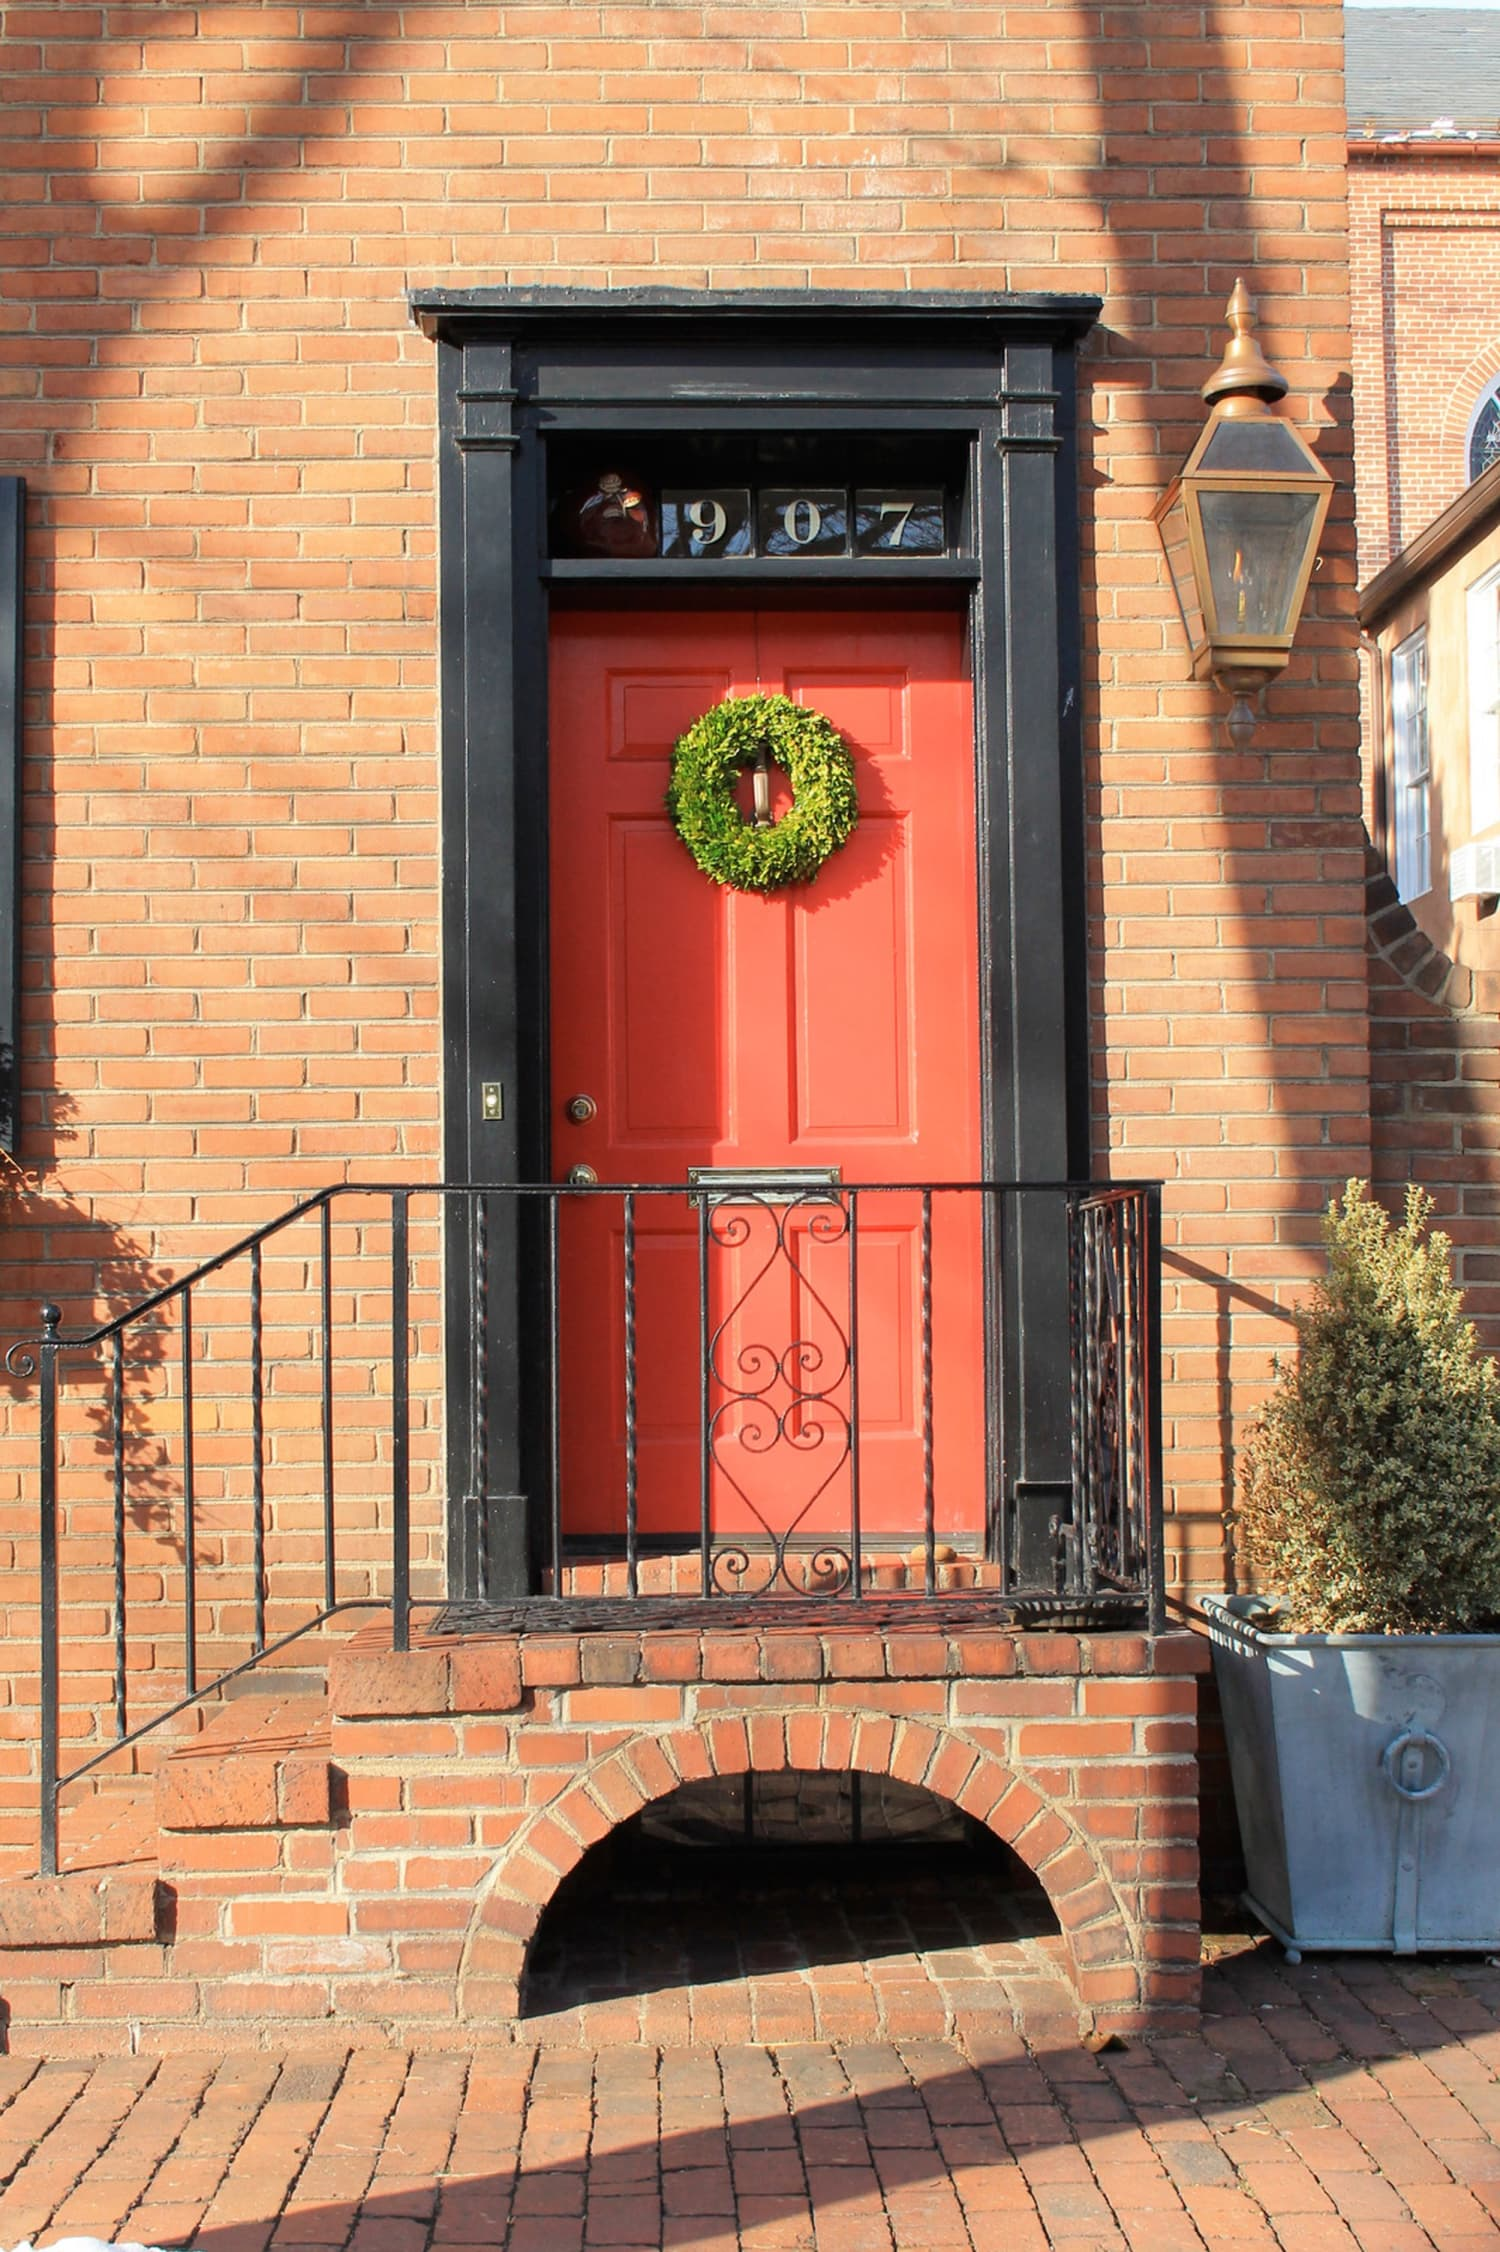 Why Are So Many Front Doors Red?